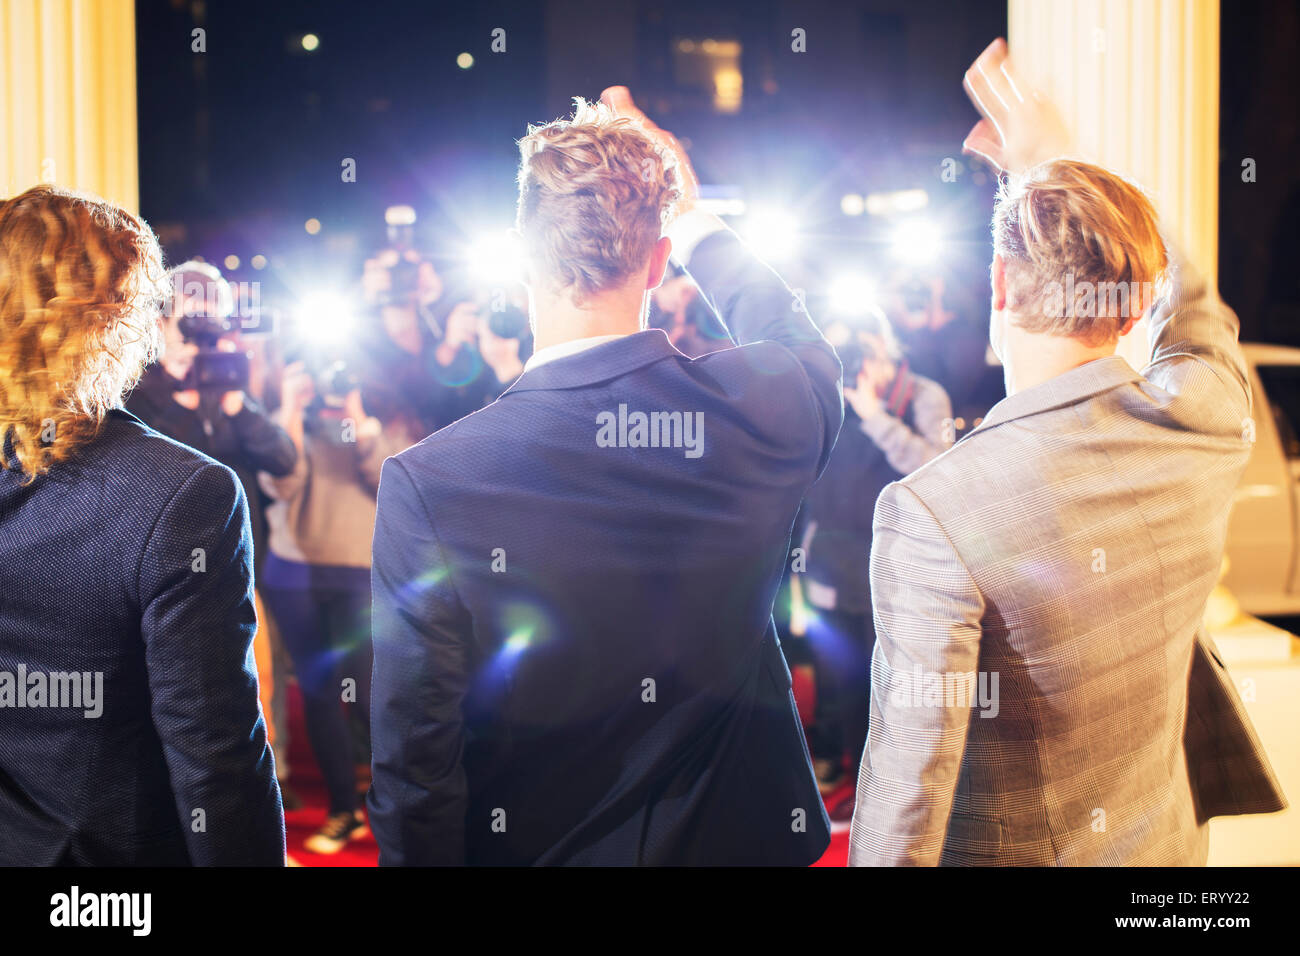 Celebrities waving and being photographed by paparazzi photographers at red carpet event - Stock Image